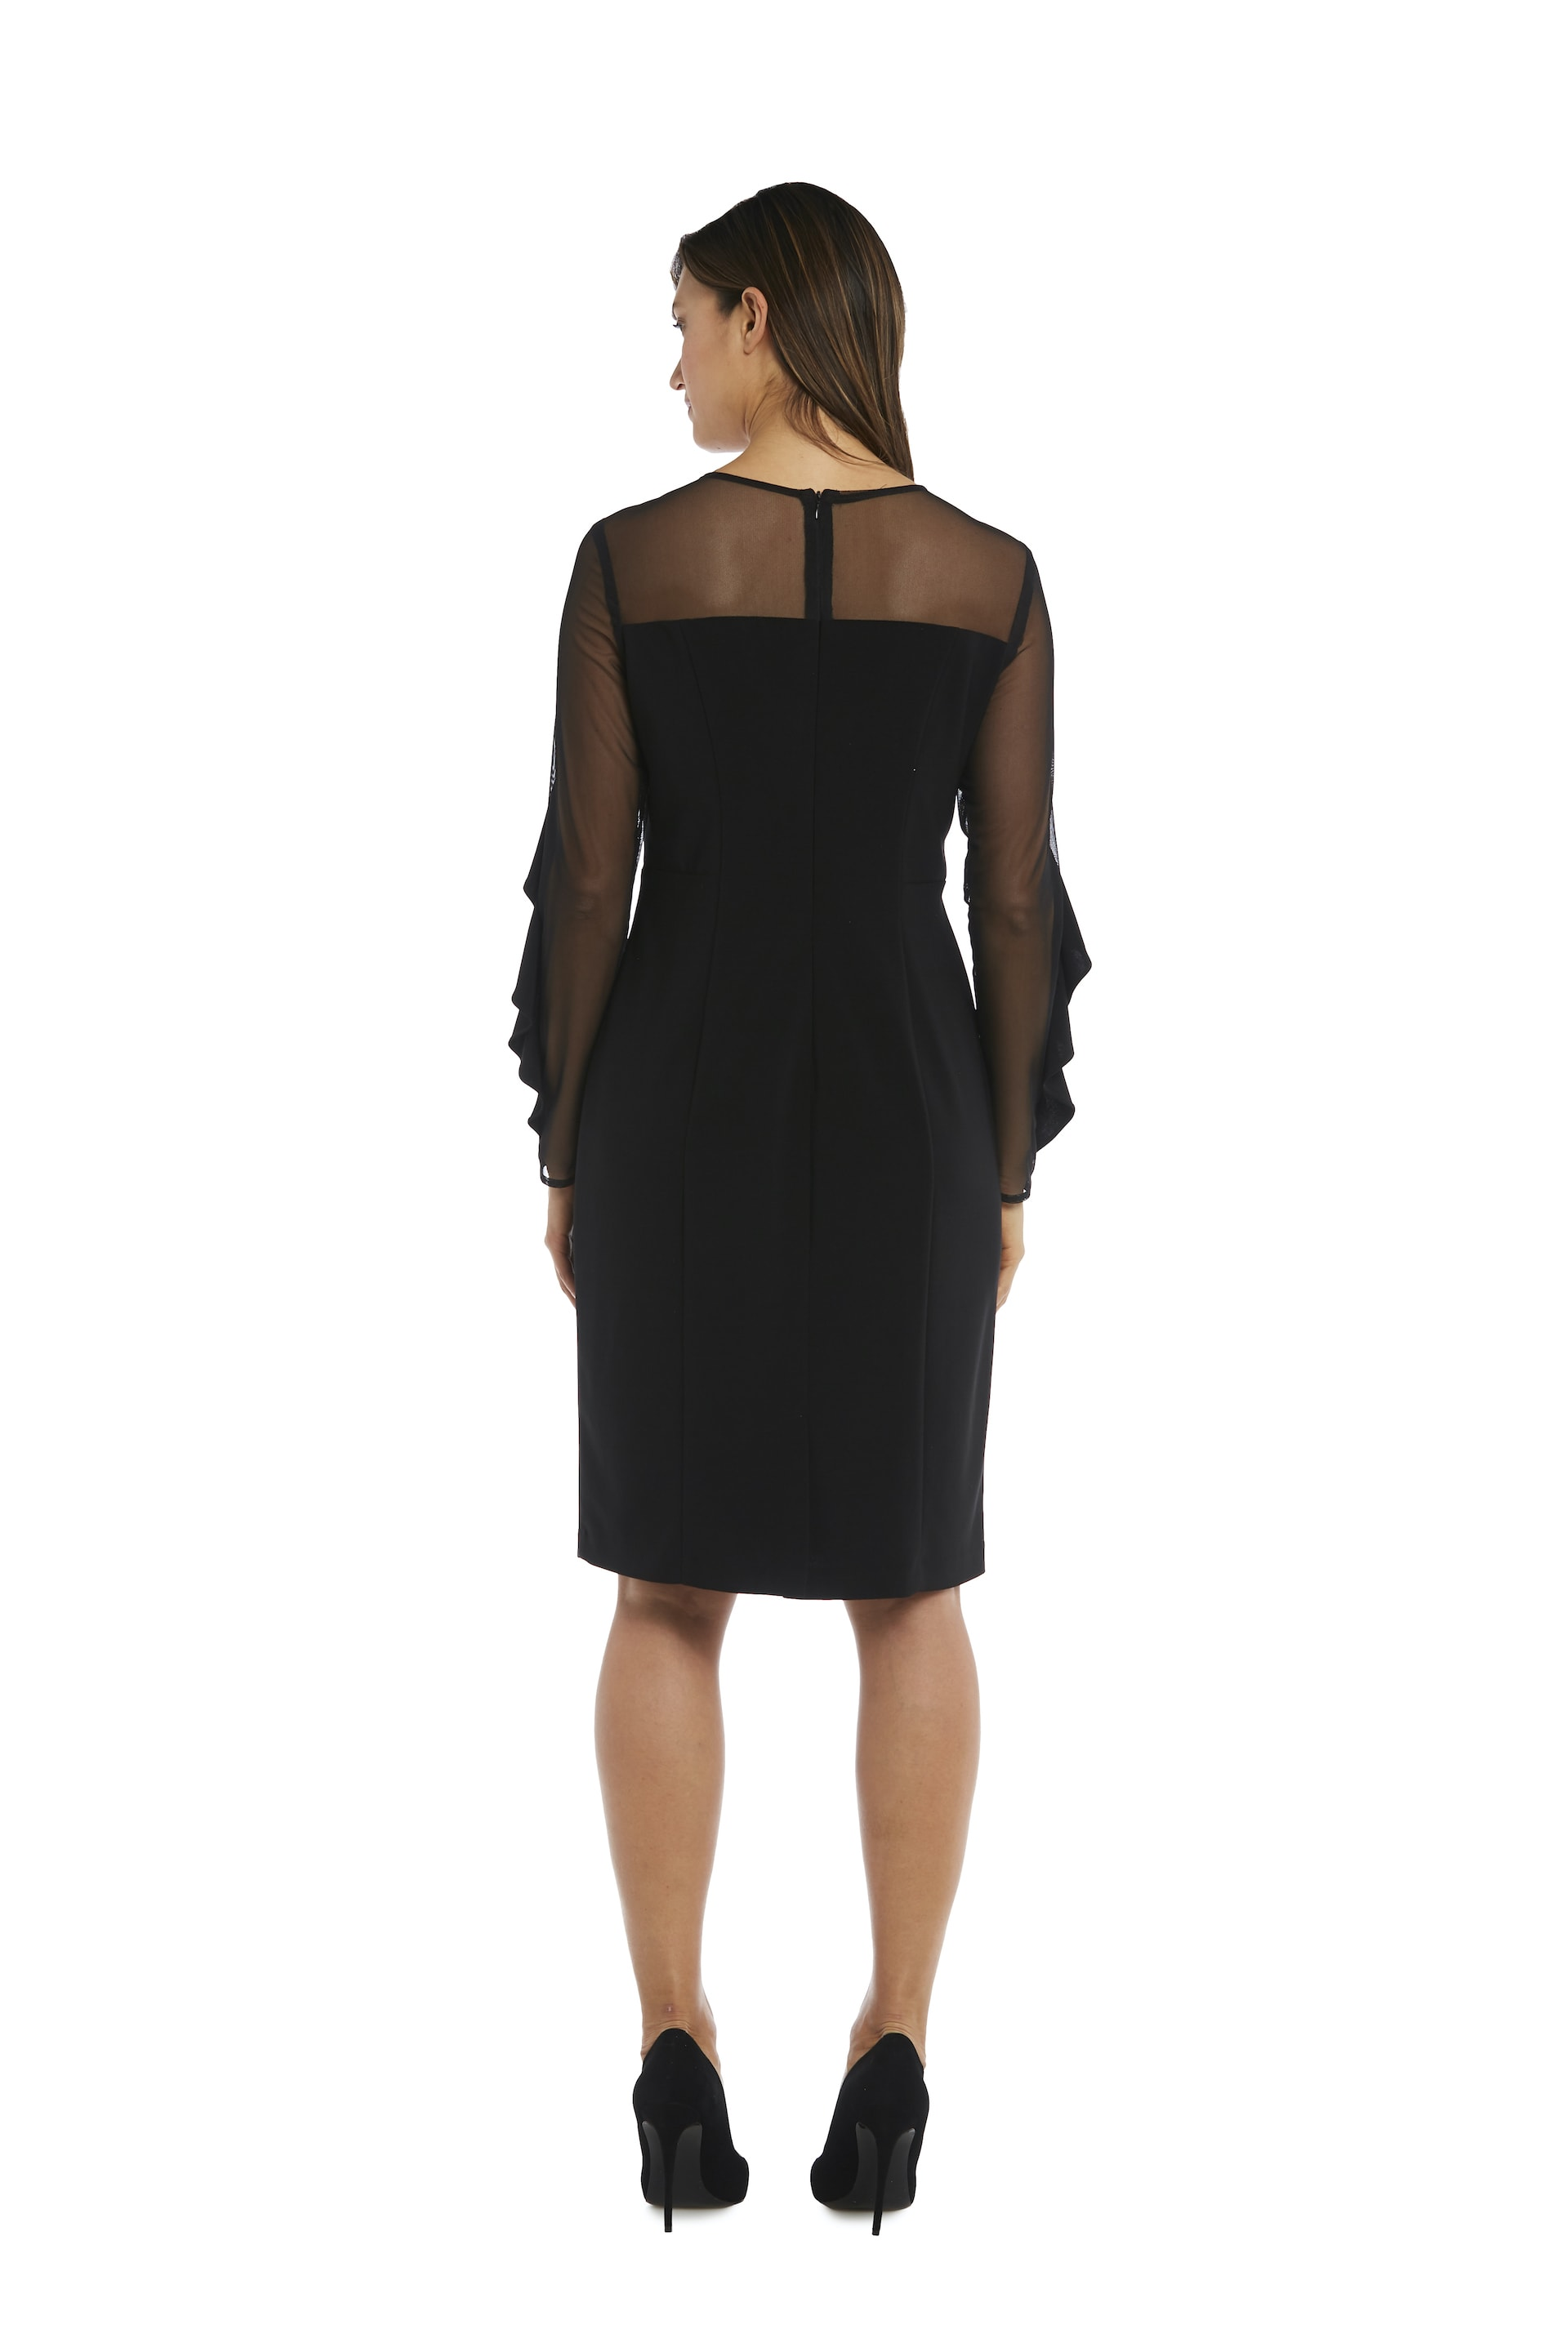 Illusion Sleeve Dress - Black - Back